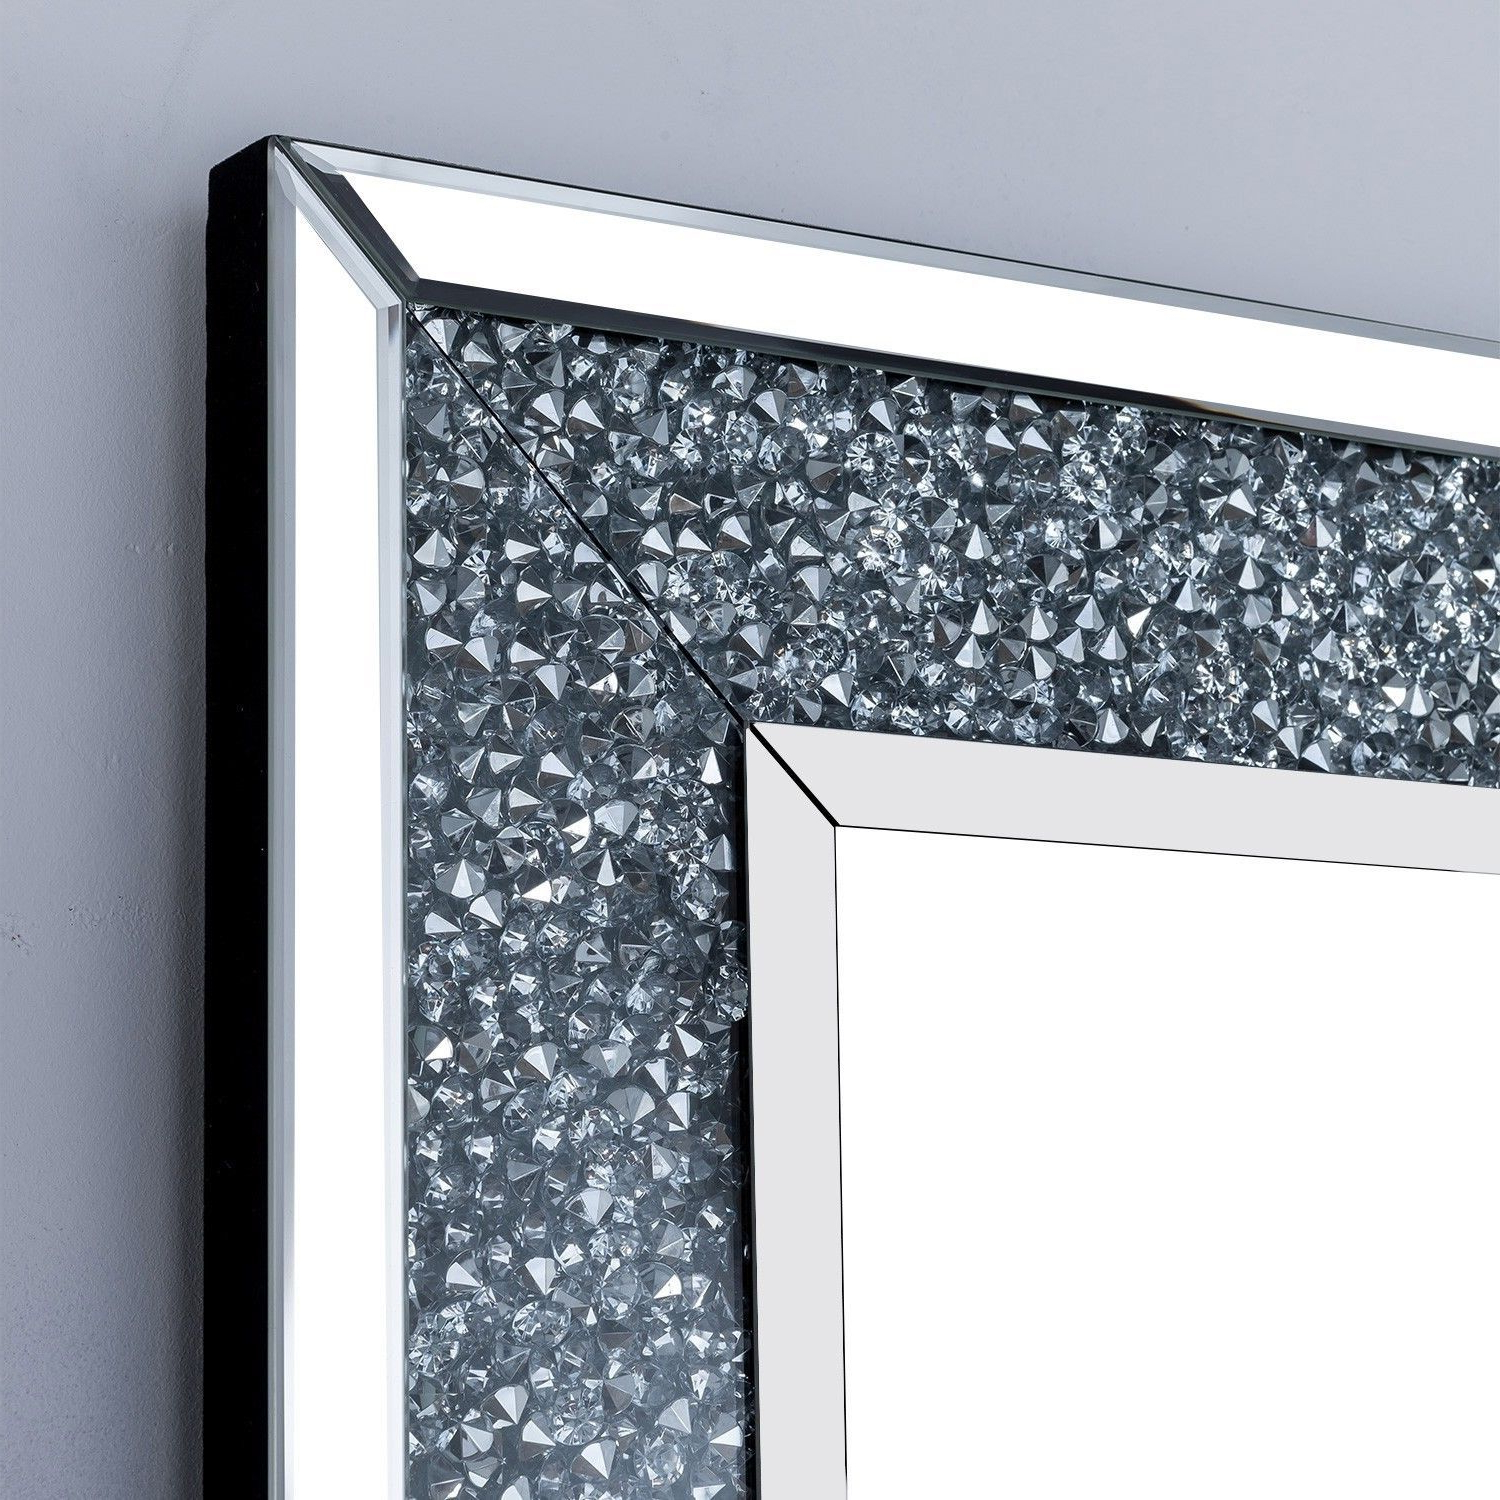 Widely Used Sparkle Wall Mirrors For Large Silver Mirrored Glass Crushed Diamond Glitz Sparkle Rectangle Wall Mirror (vdc Mr Rc 80 120) (View 10 of 20)